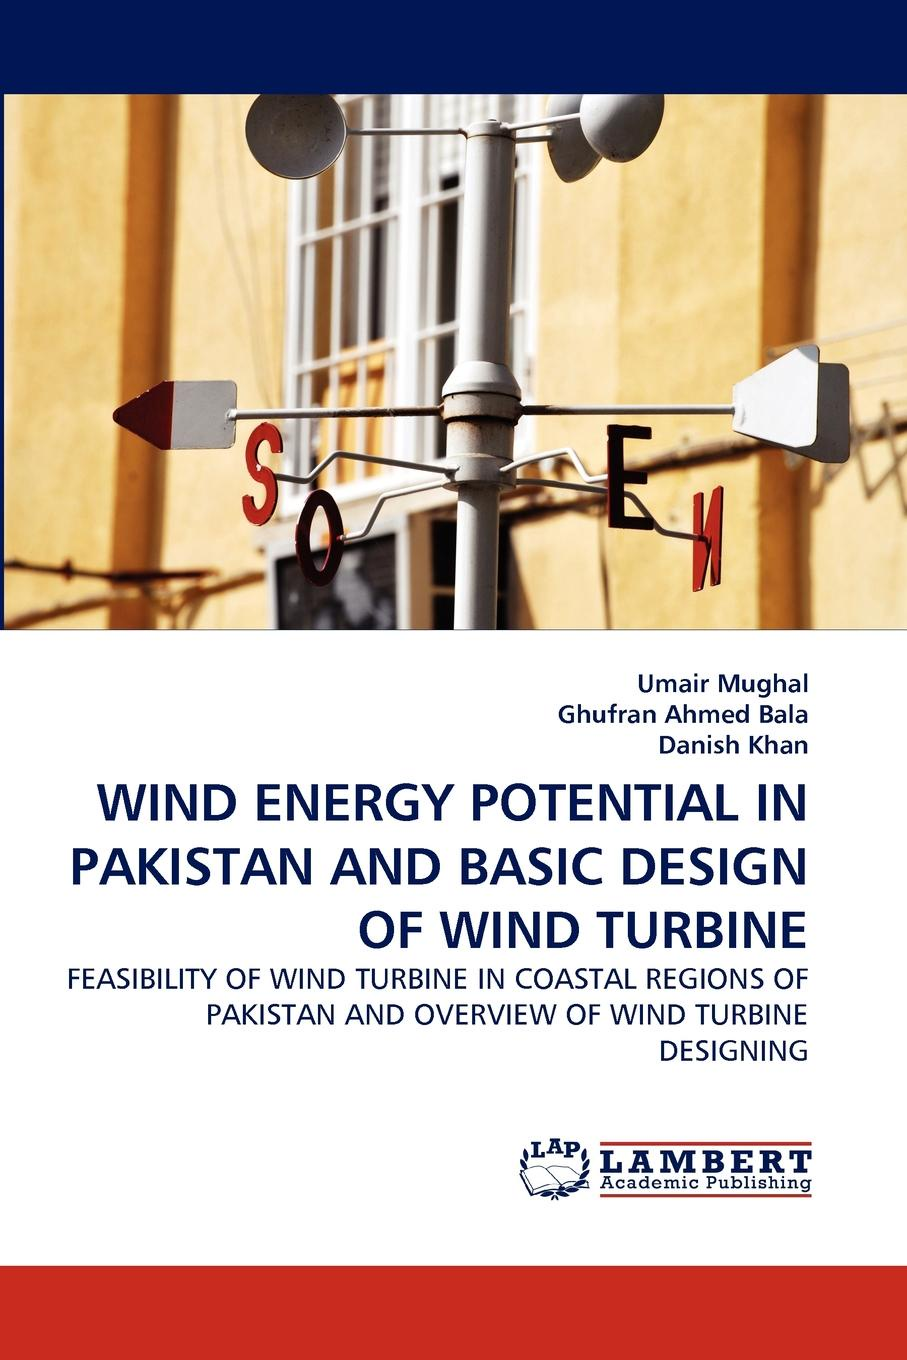 Umair Mughal, Ghufran Ahmed Bala, Danish Khan Wind Energy Potential in Pakistan and Basic Design of Wind Turbine